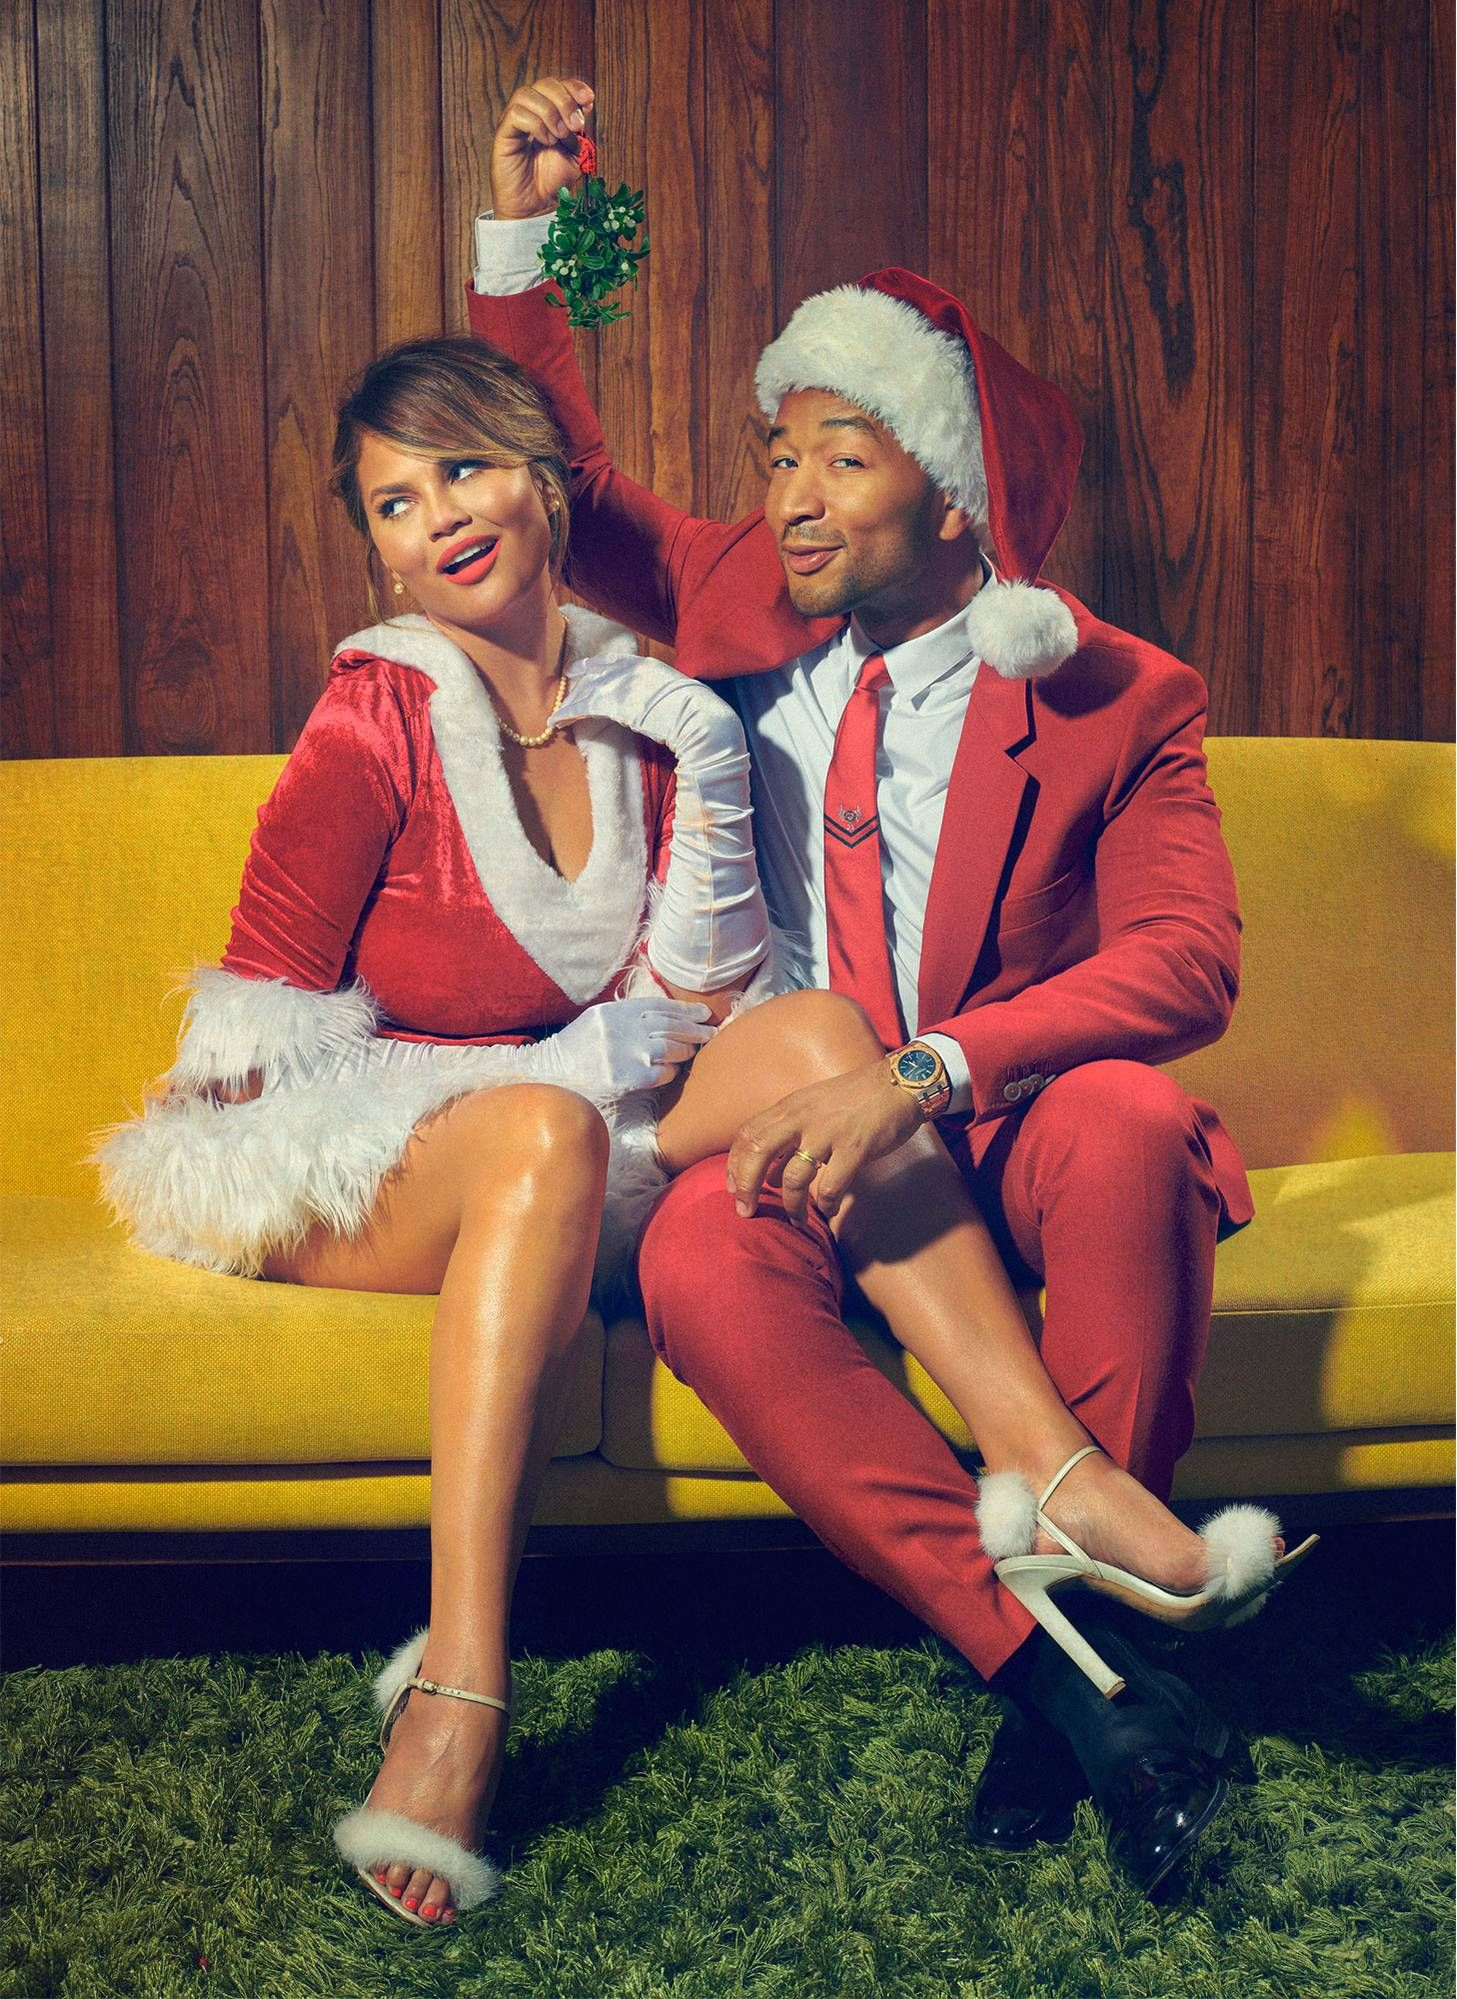 Merry Chrissy Mas John Legend And Chrissy Teigen Are Getting Their Own Holiday Special Cute Celebrity Couples John Legend Chrissy Teigen John Legend